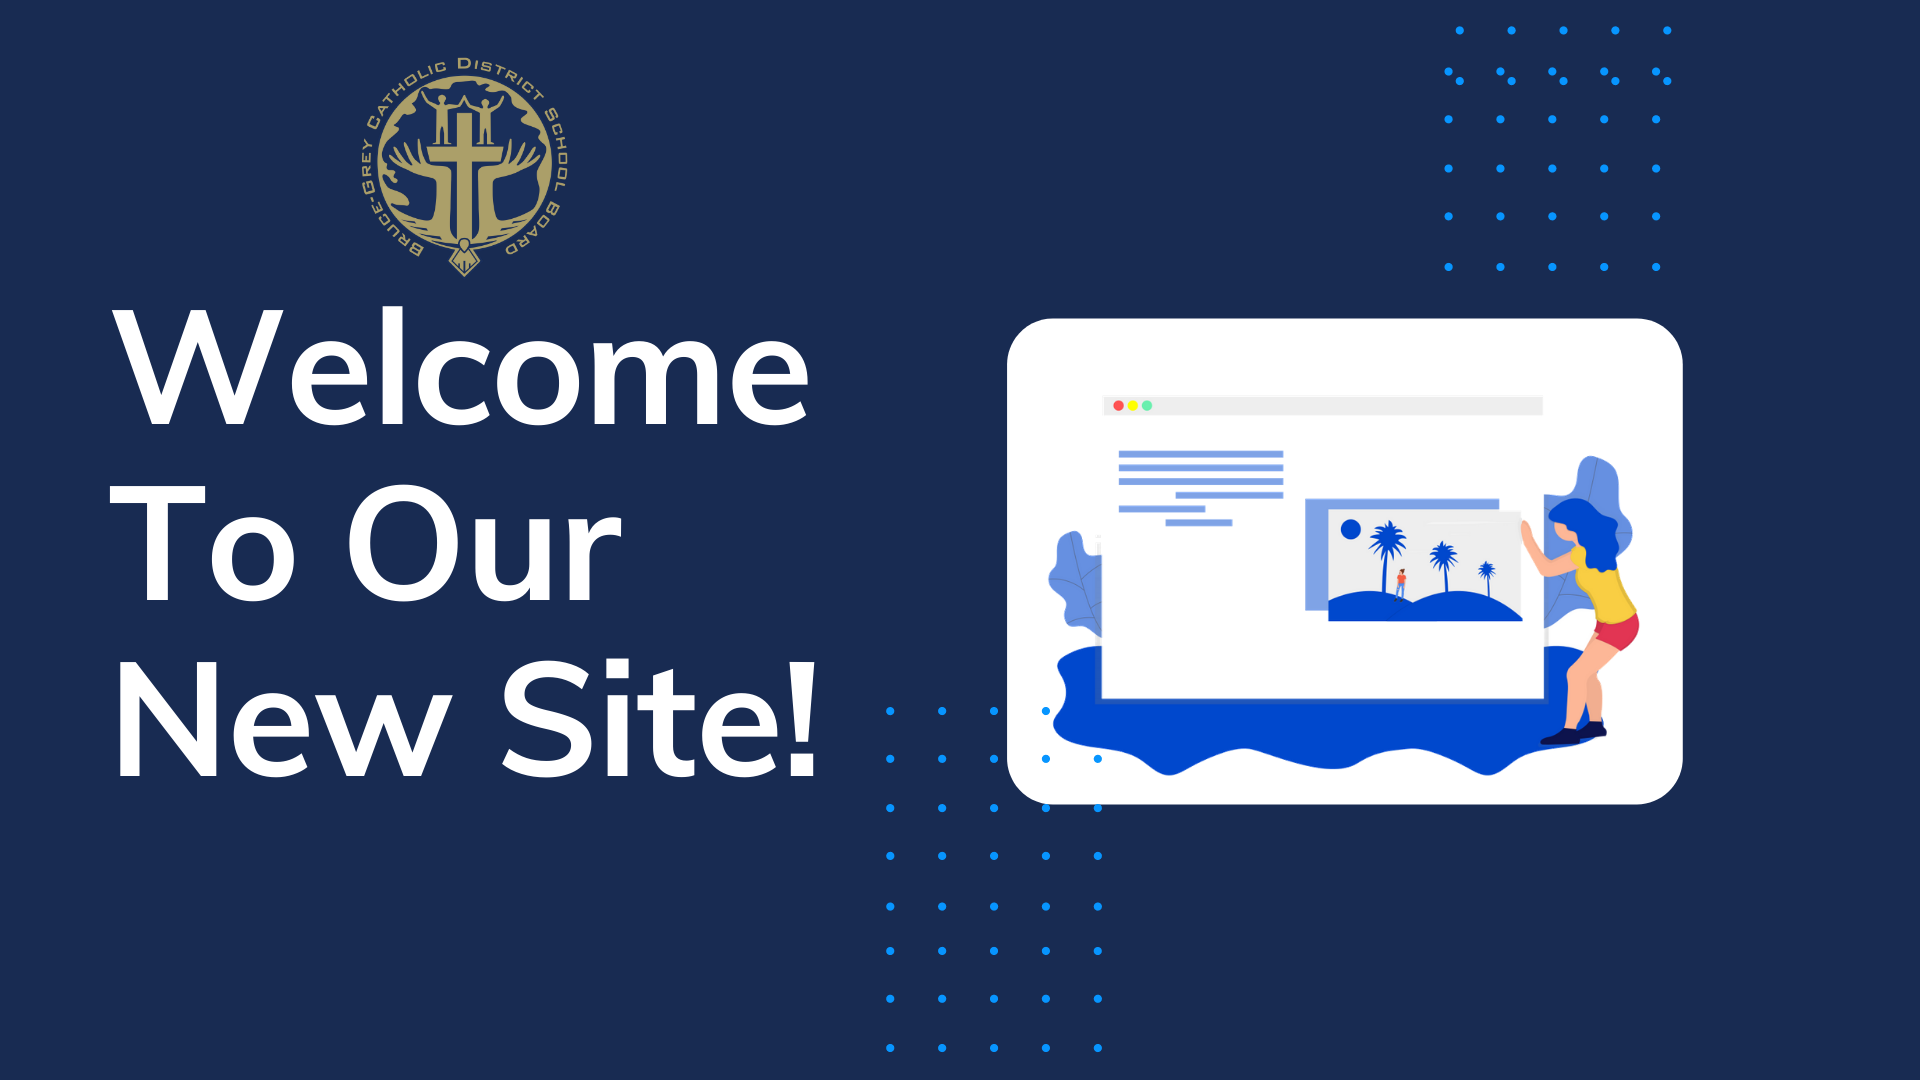 Welcome to our new site